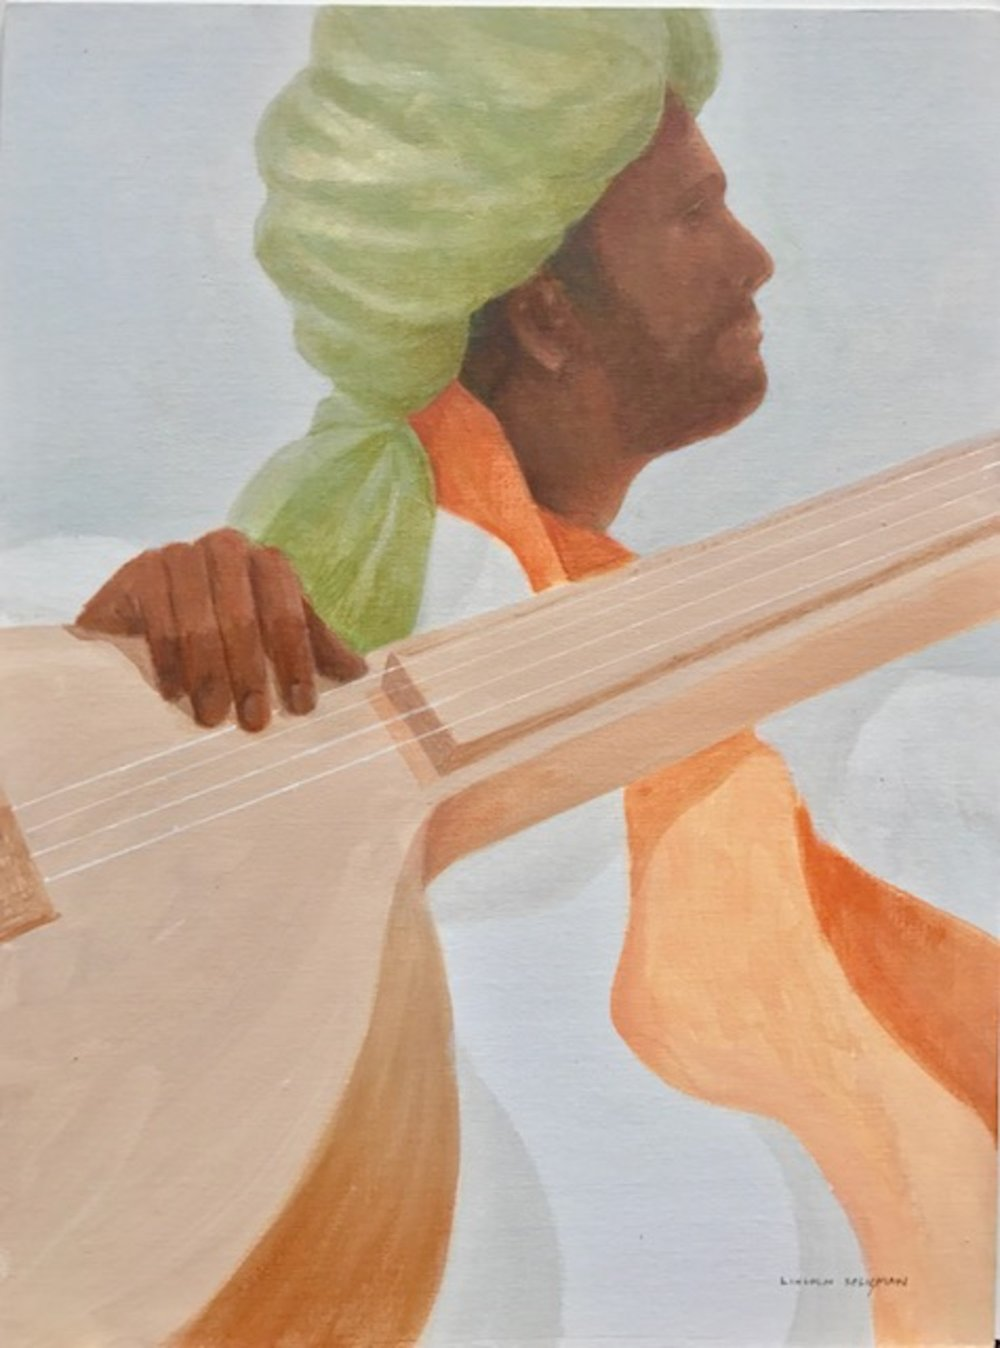 Sitar player, olive turban